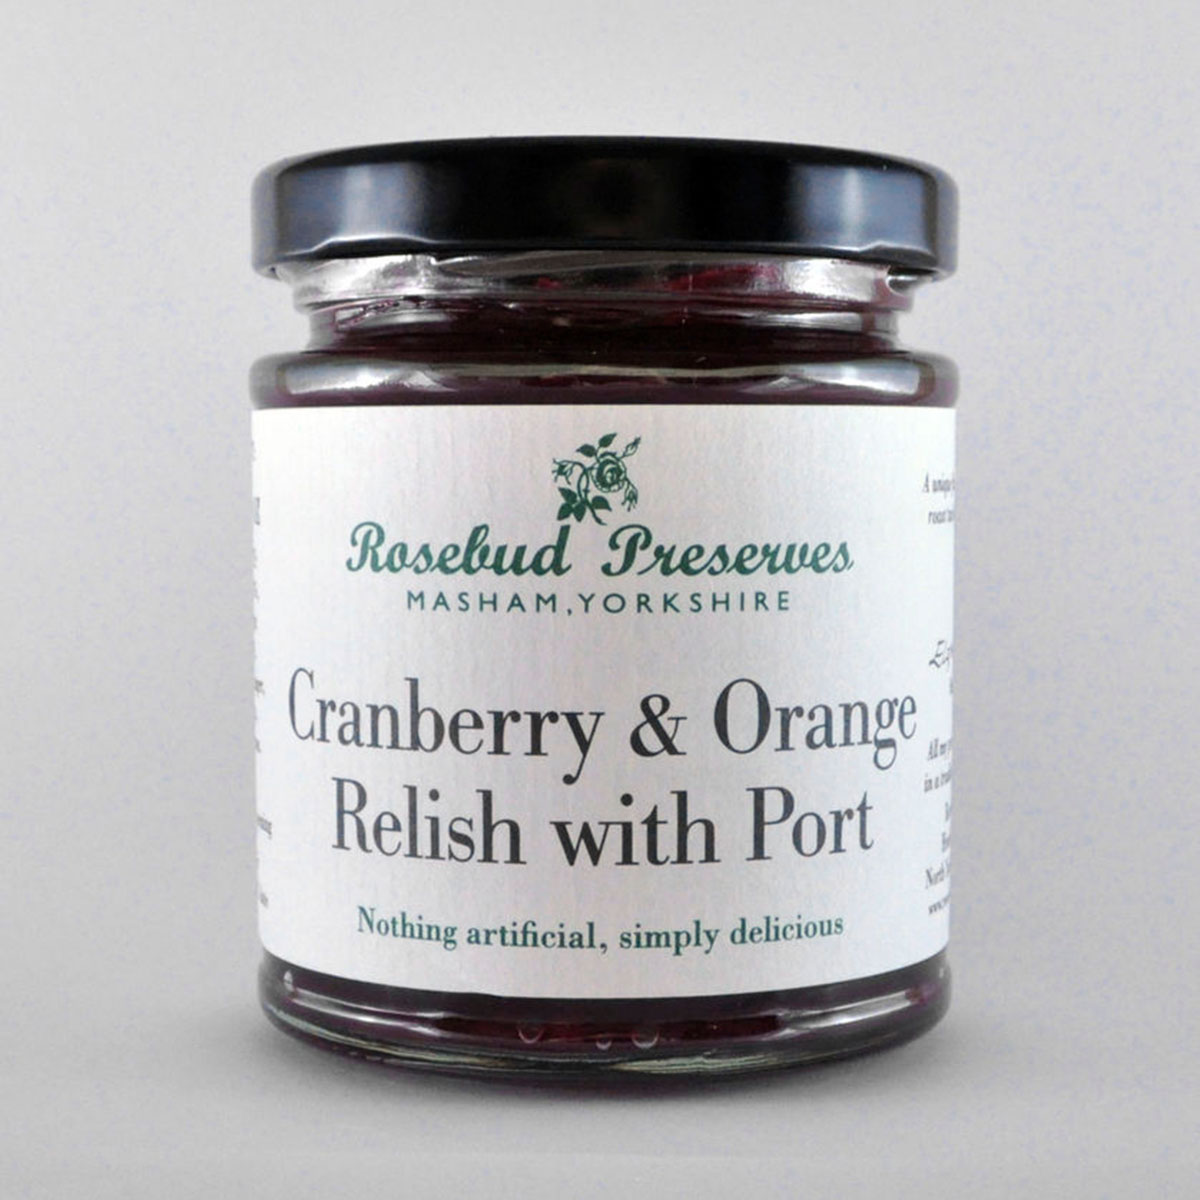 rosebud-preserves-cranberry-orange-relish-with-port-cranberry-sauce ...